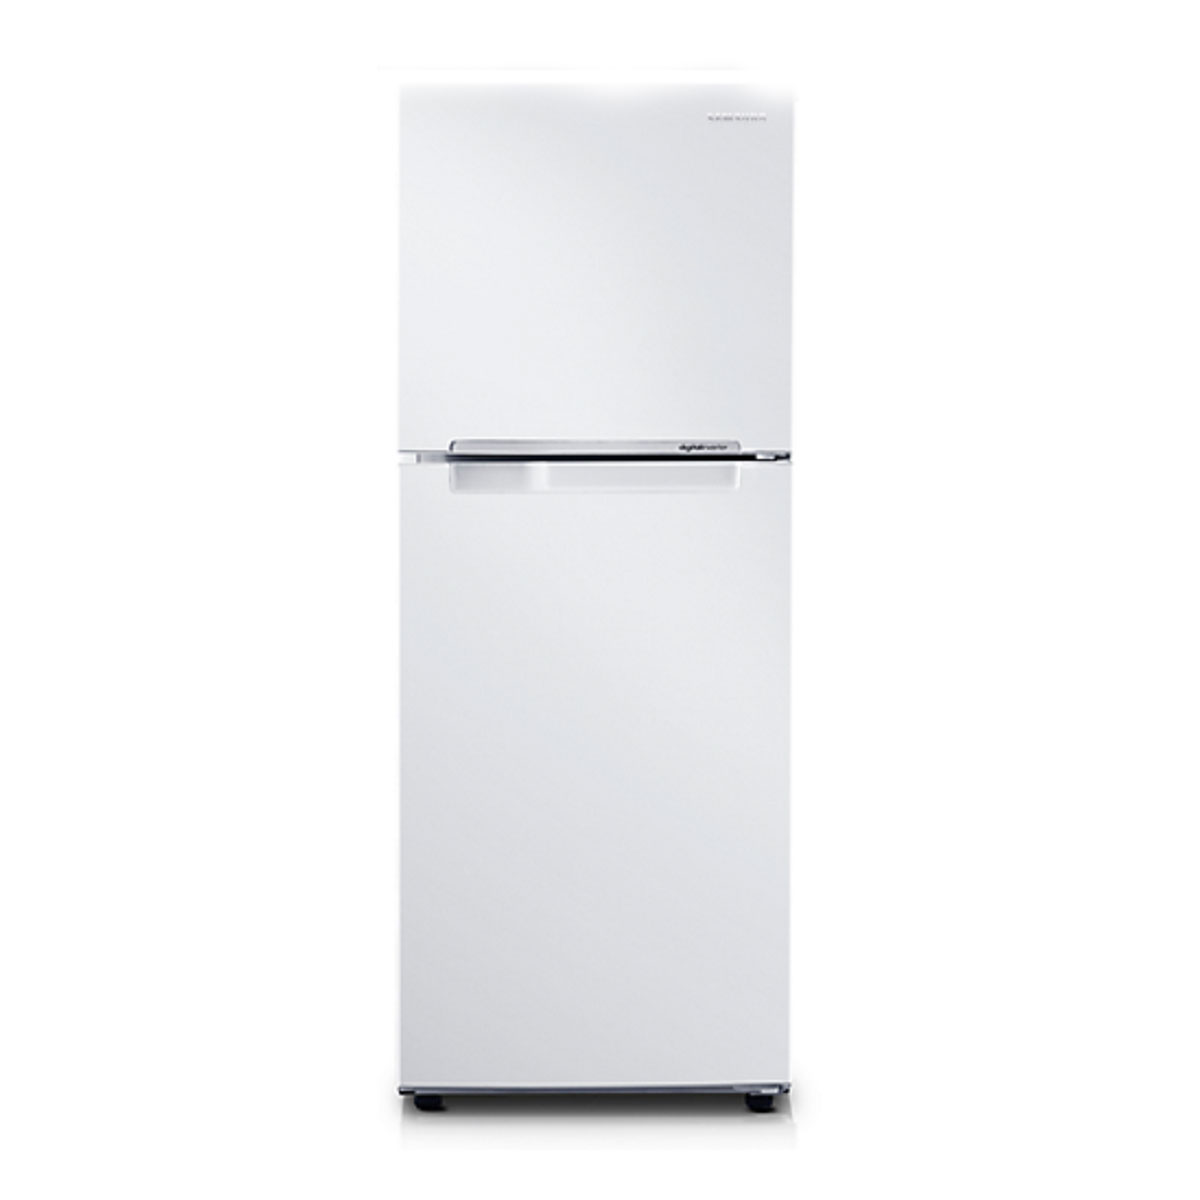 Samsung 228L Top Mount Fridge White SR227MW